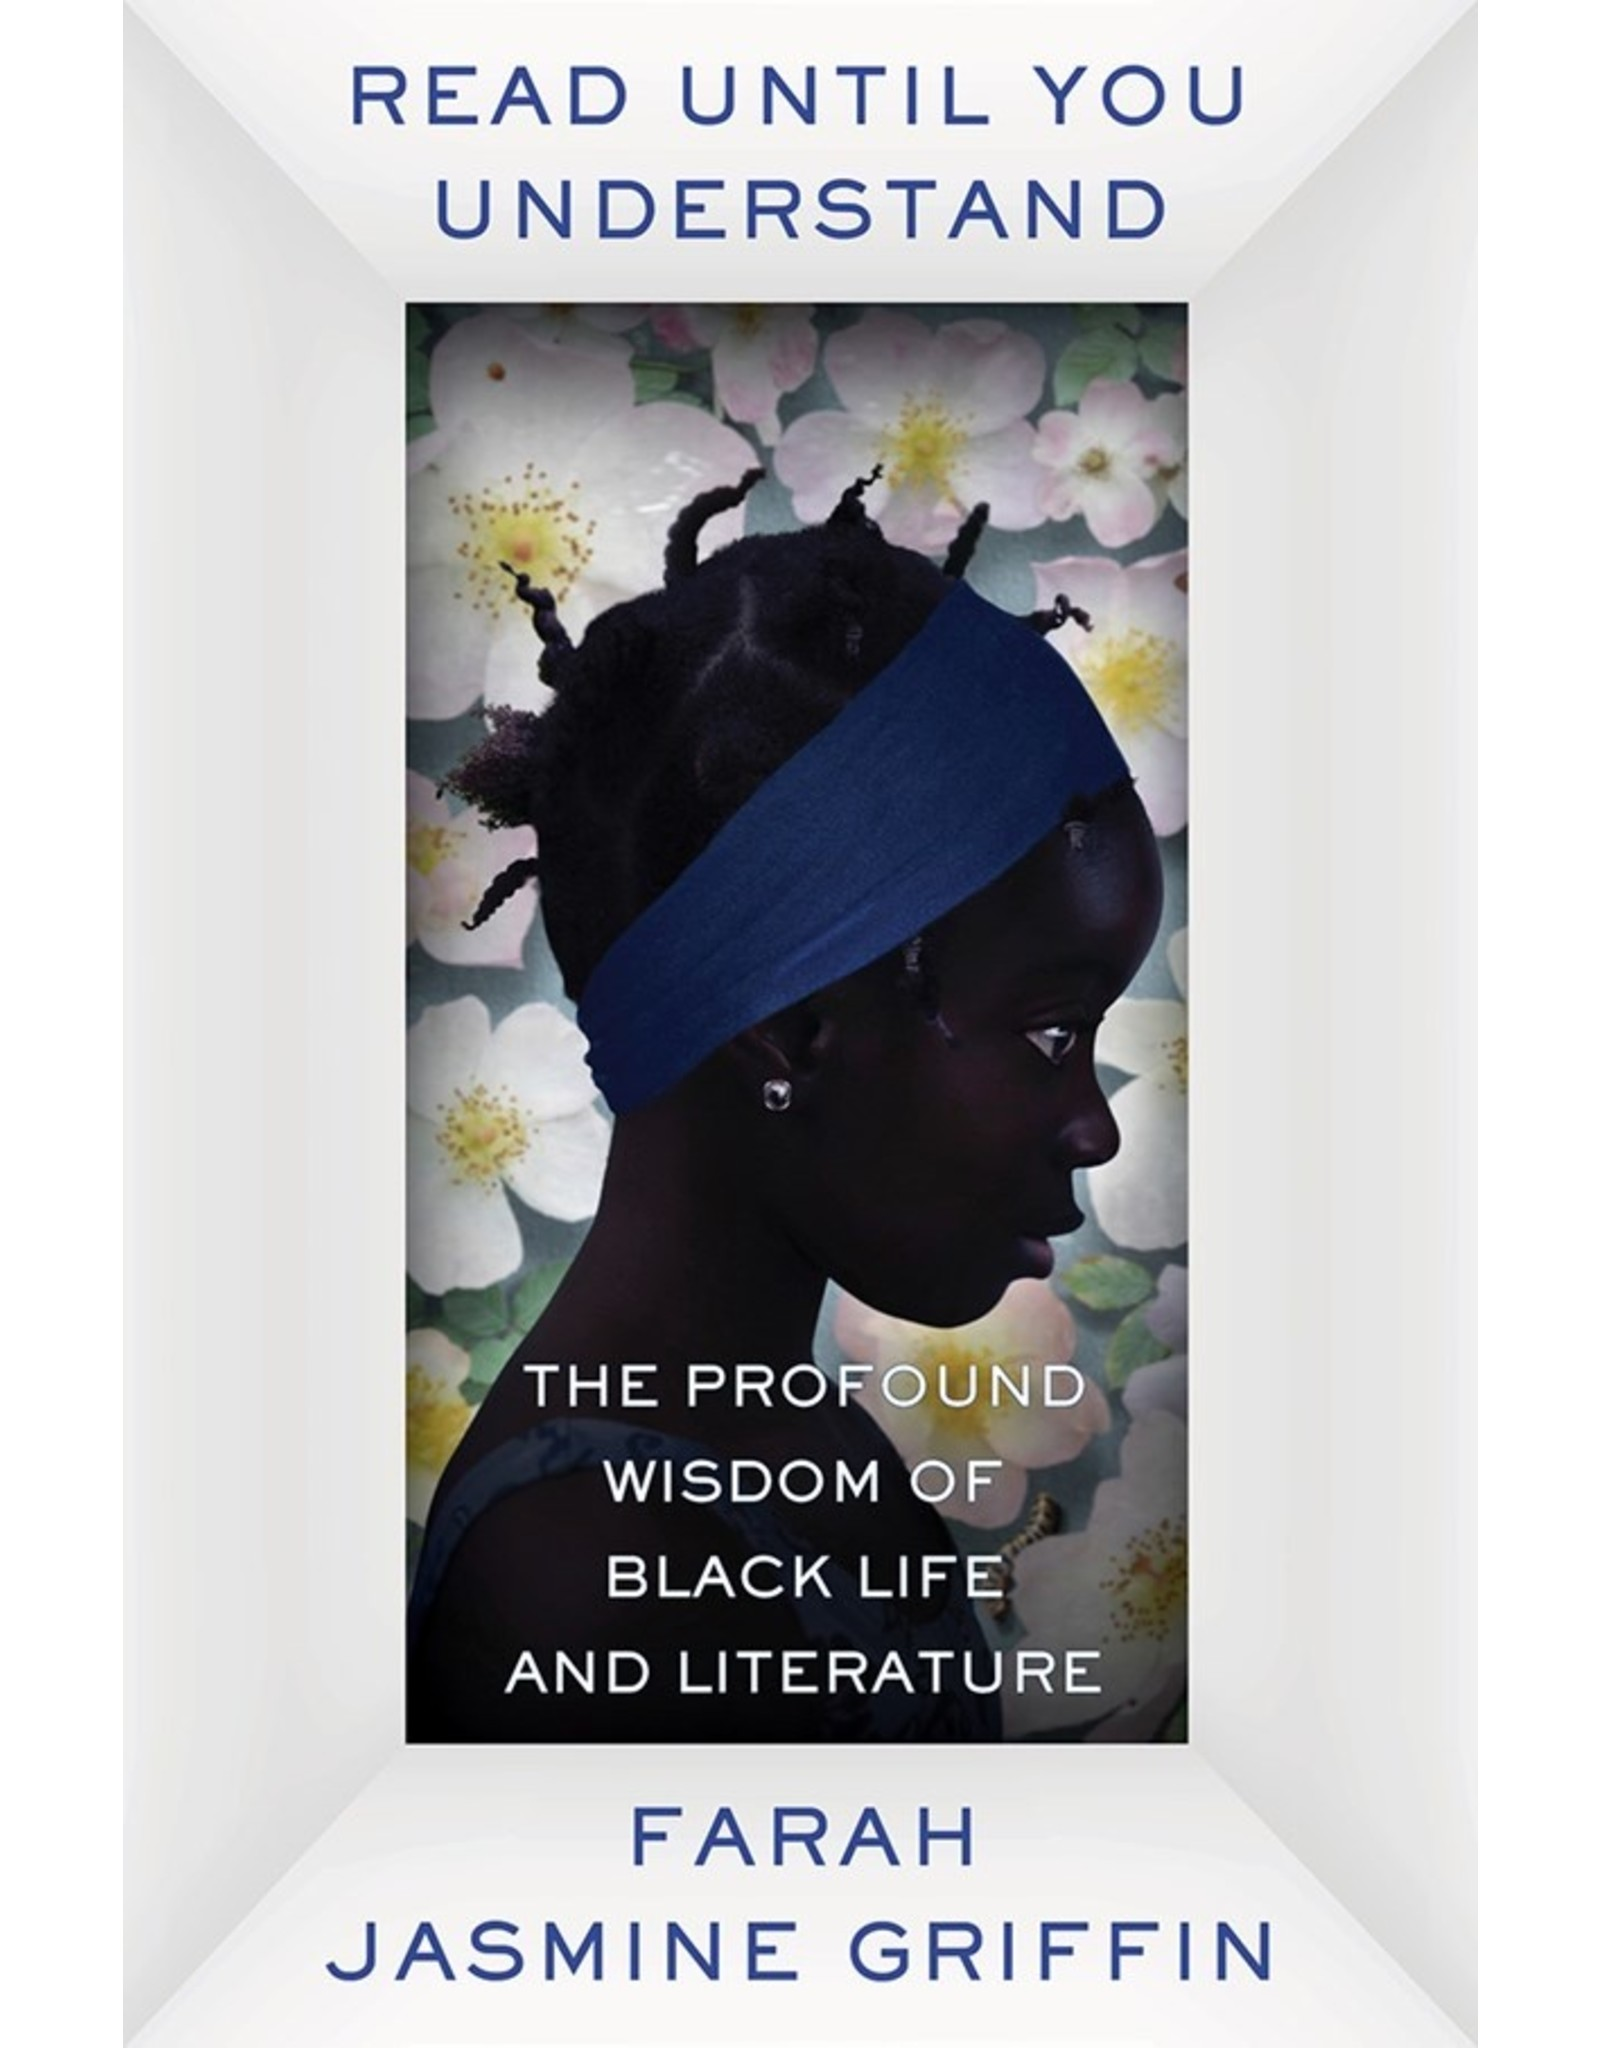 Books Read Until You Understand : The Profound Wisdom of Black Life and Literature by Farah Jasmine Griffin